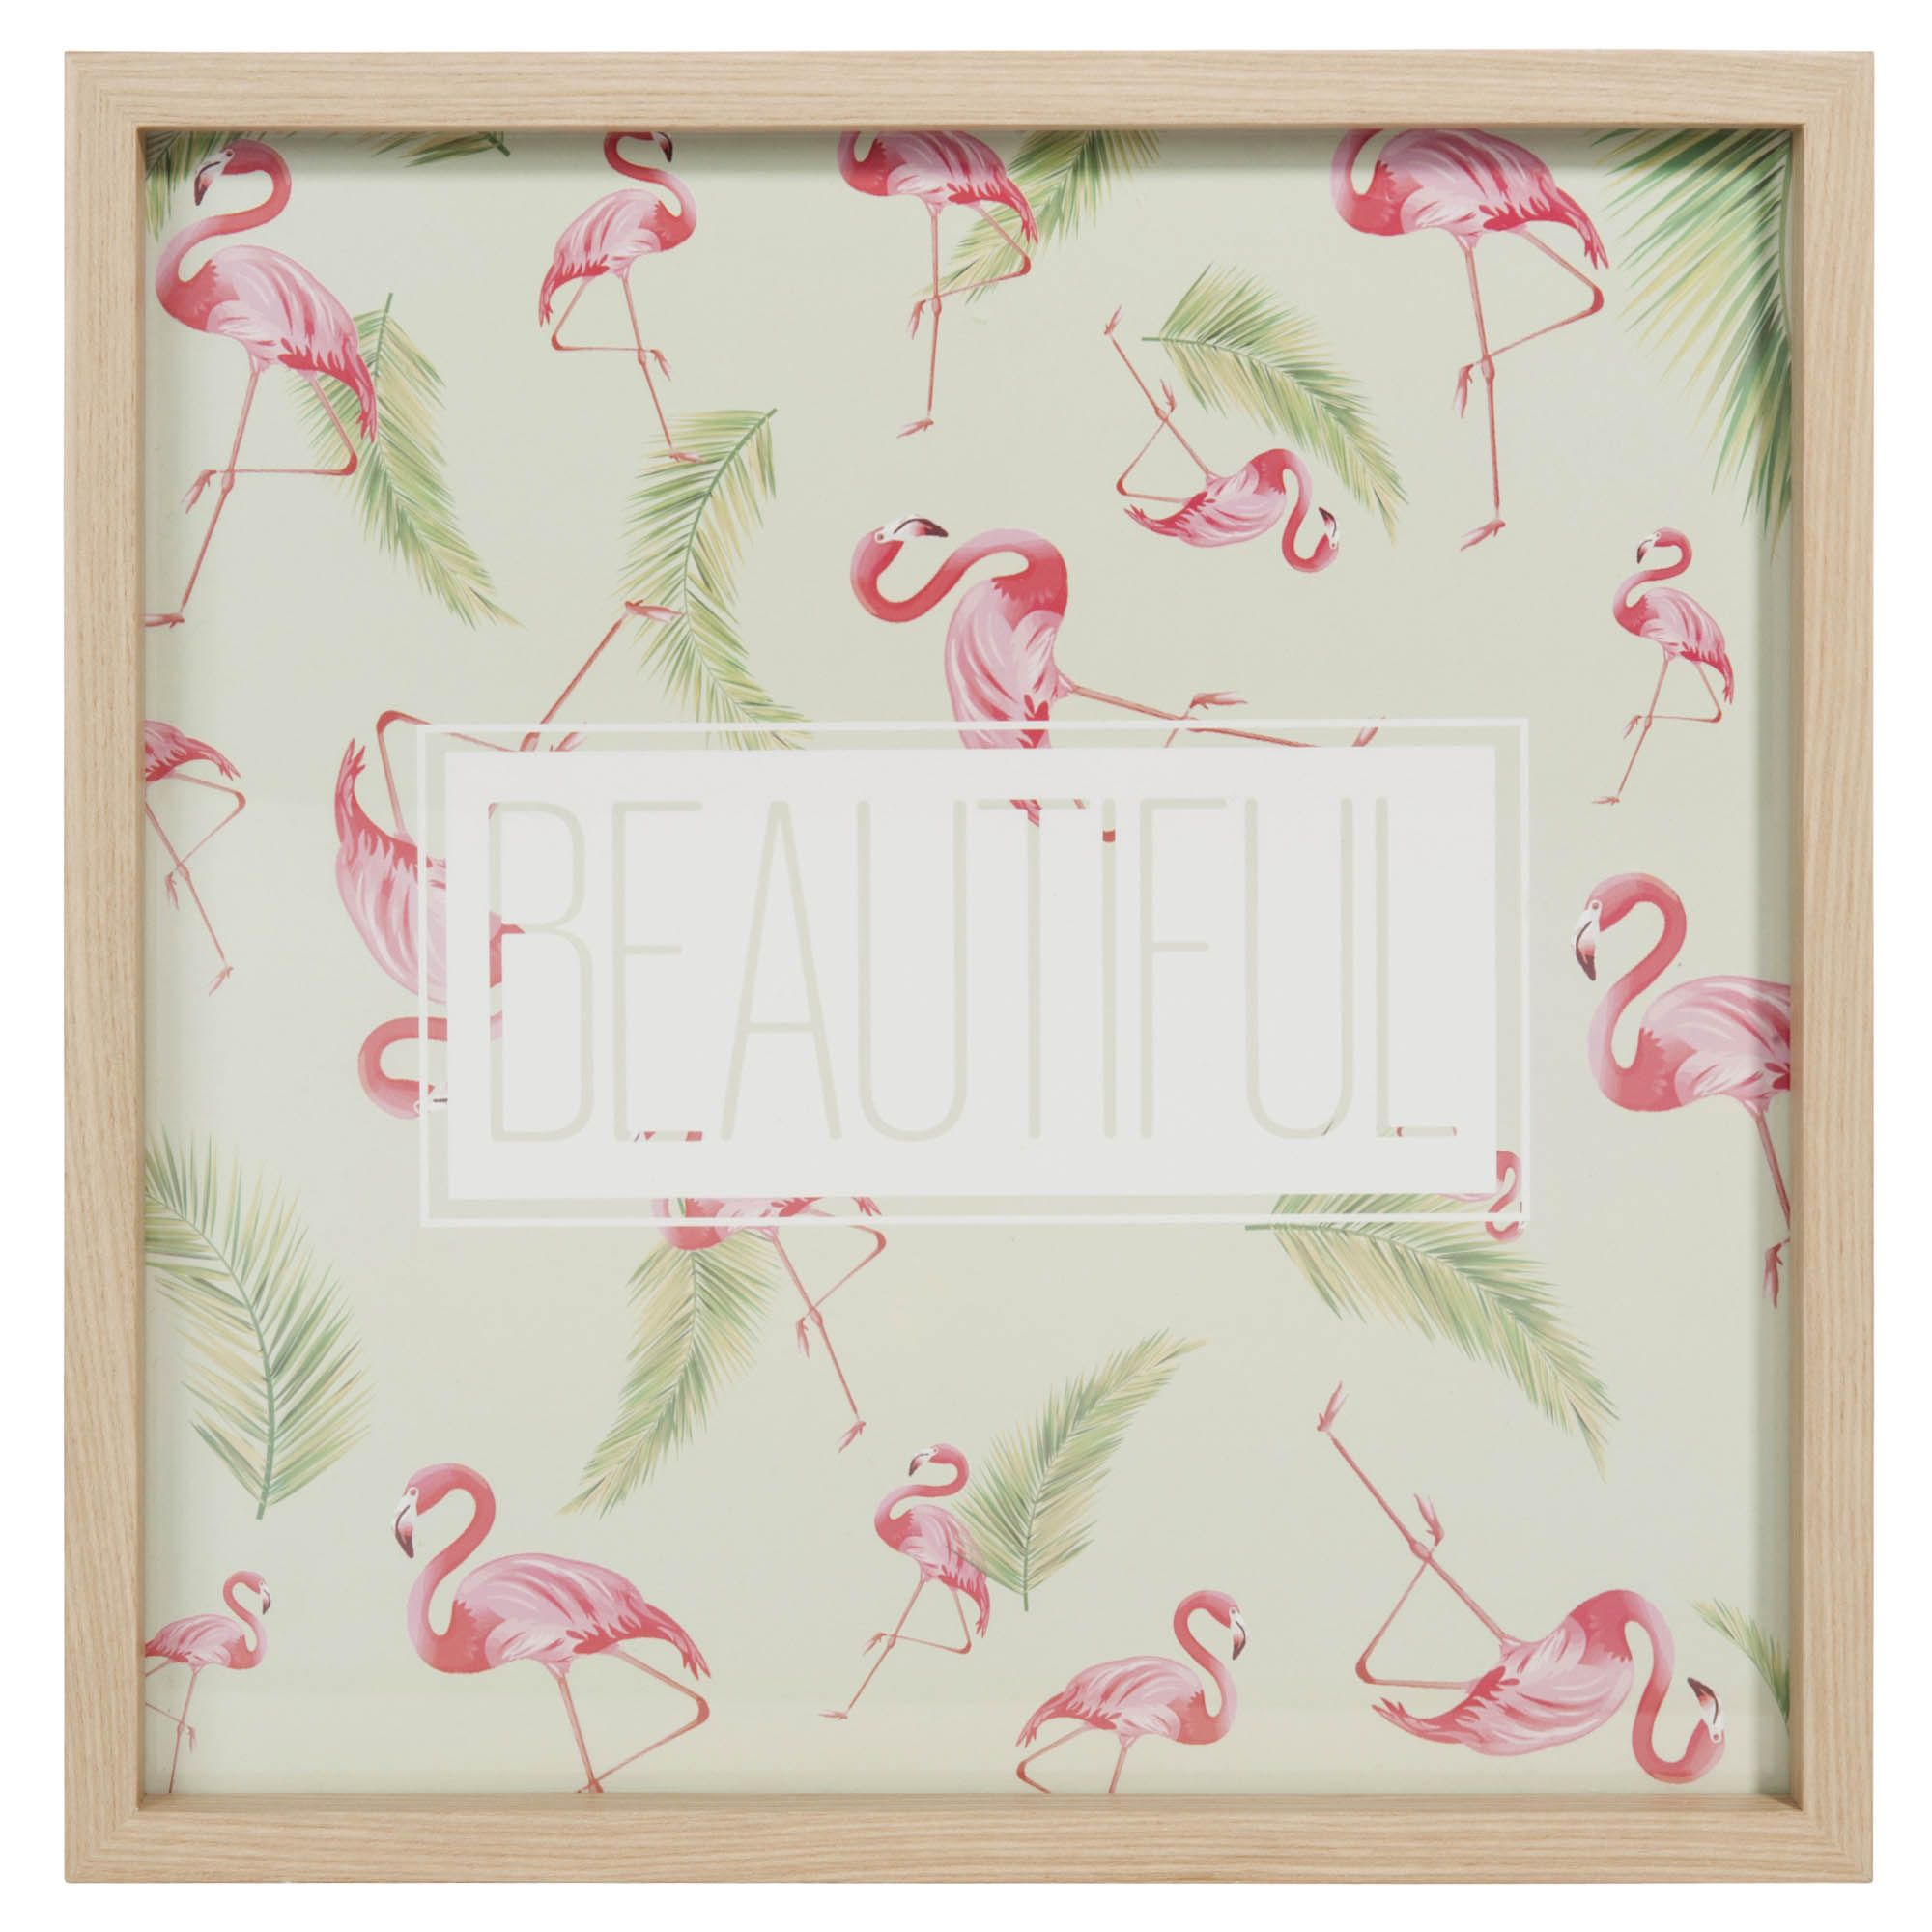 tableau en bois et verre 30 x 30 cm beautiful flamingo. Black Bedroom Furniture Sets. Home Design Ideas